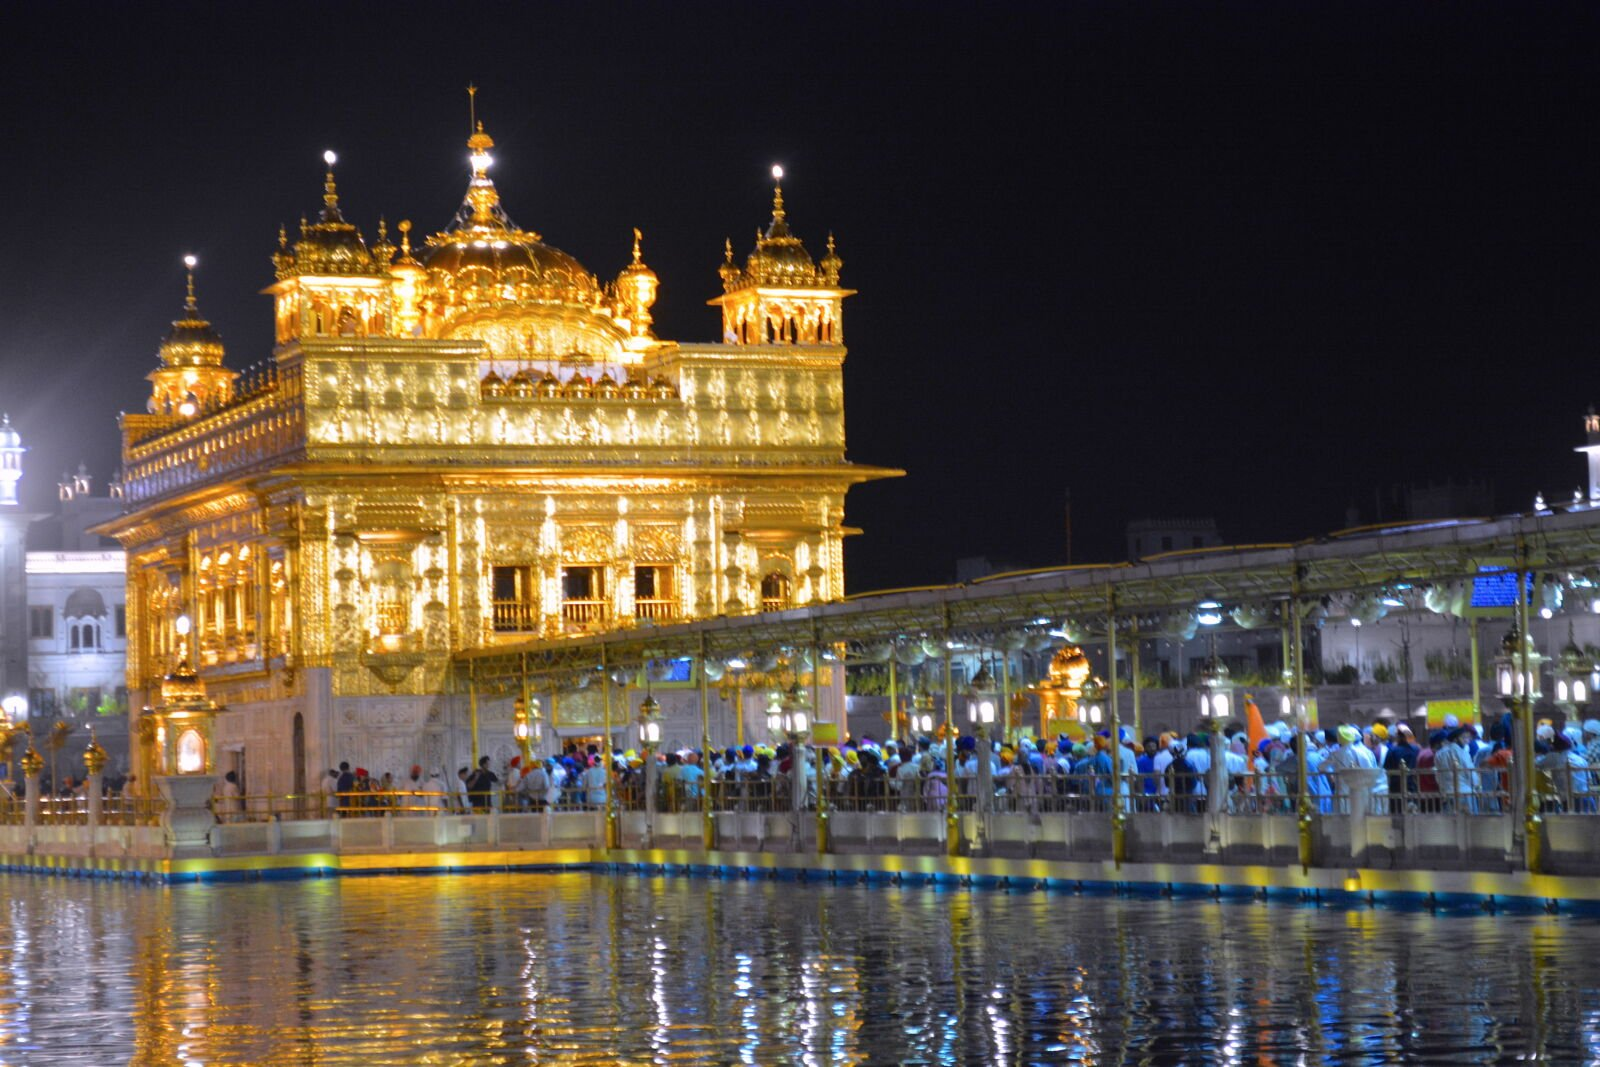 golden-temple-at-night-amritsar-crowds